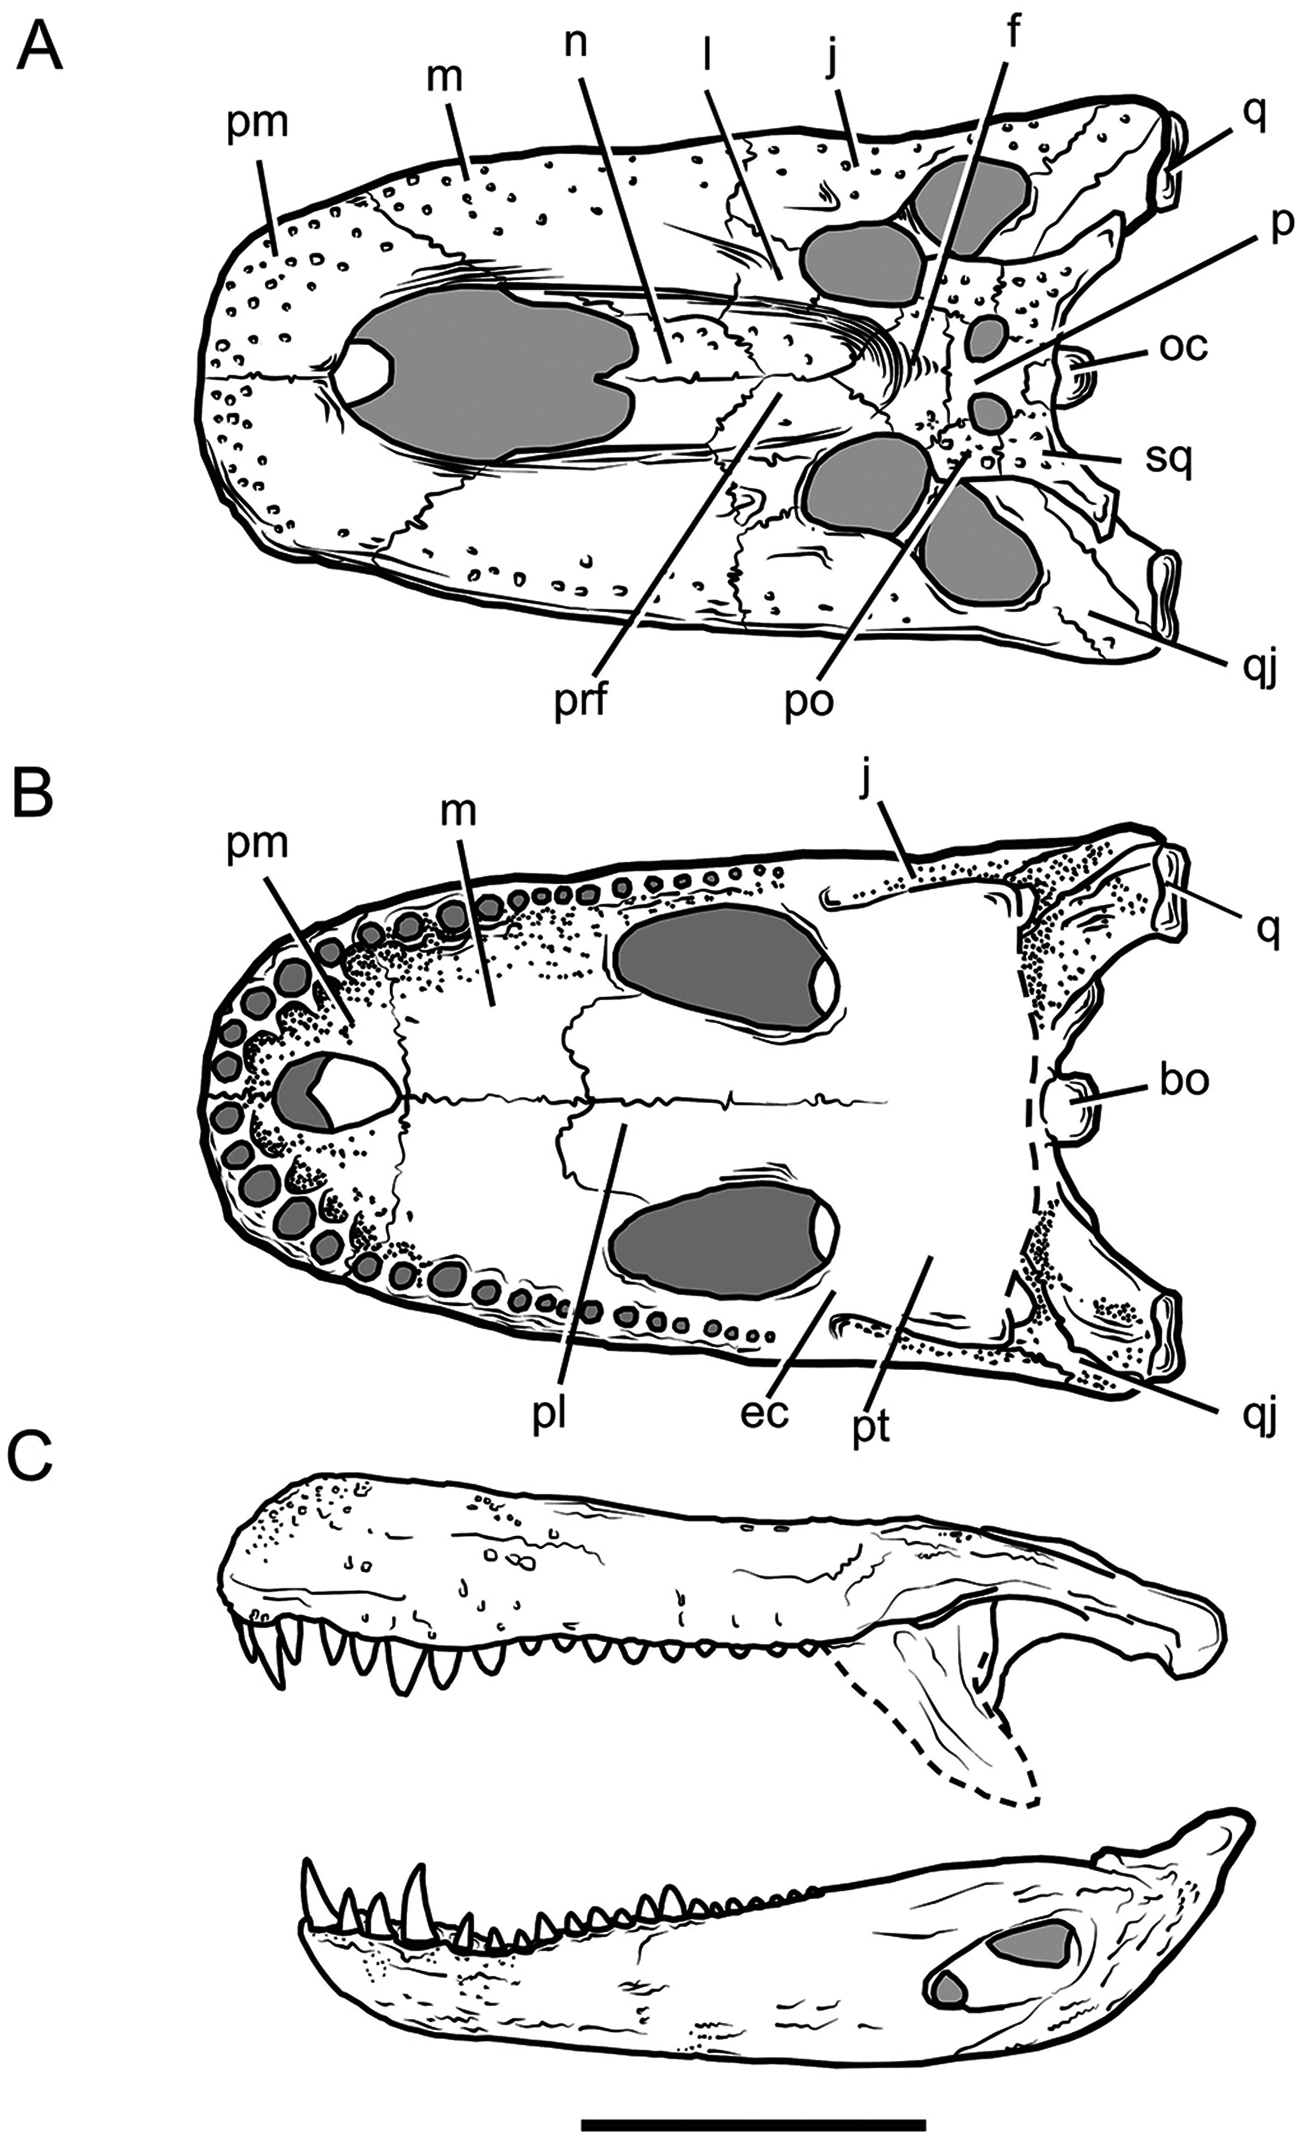 https://upload.wikimedia.org/wikipedia/commons/a/a8/Purussaurus_skull.PNG